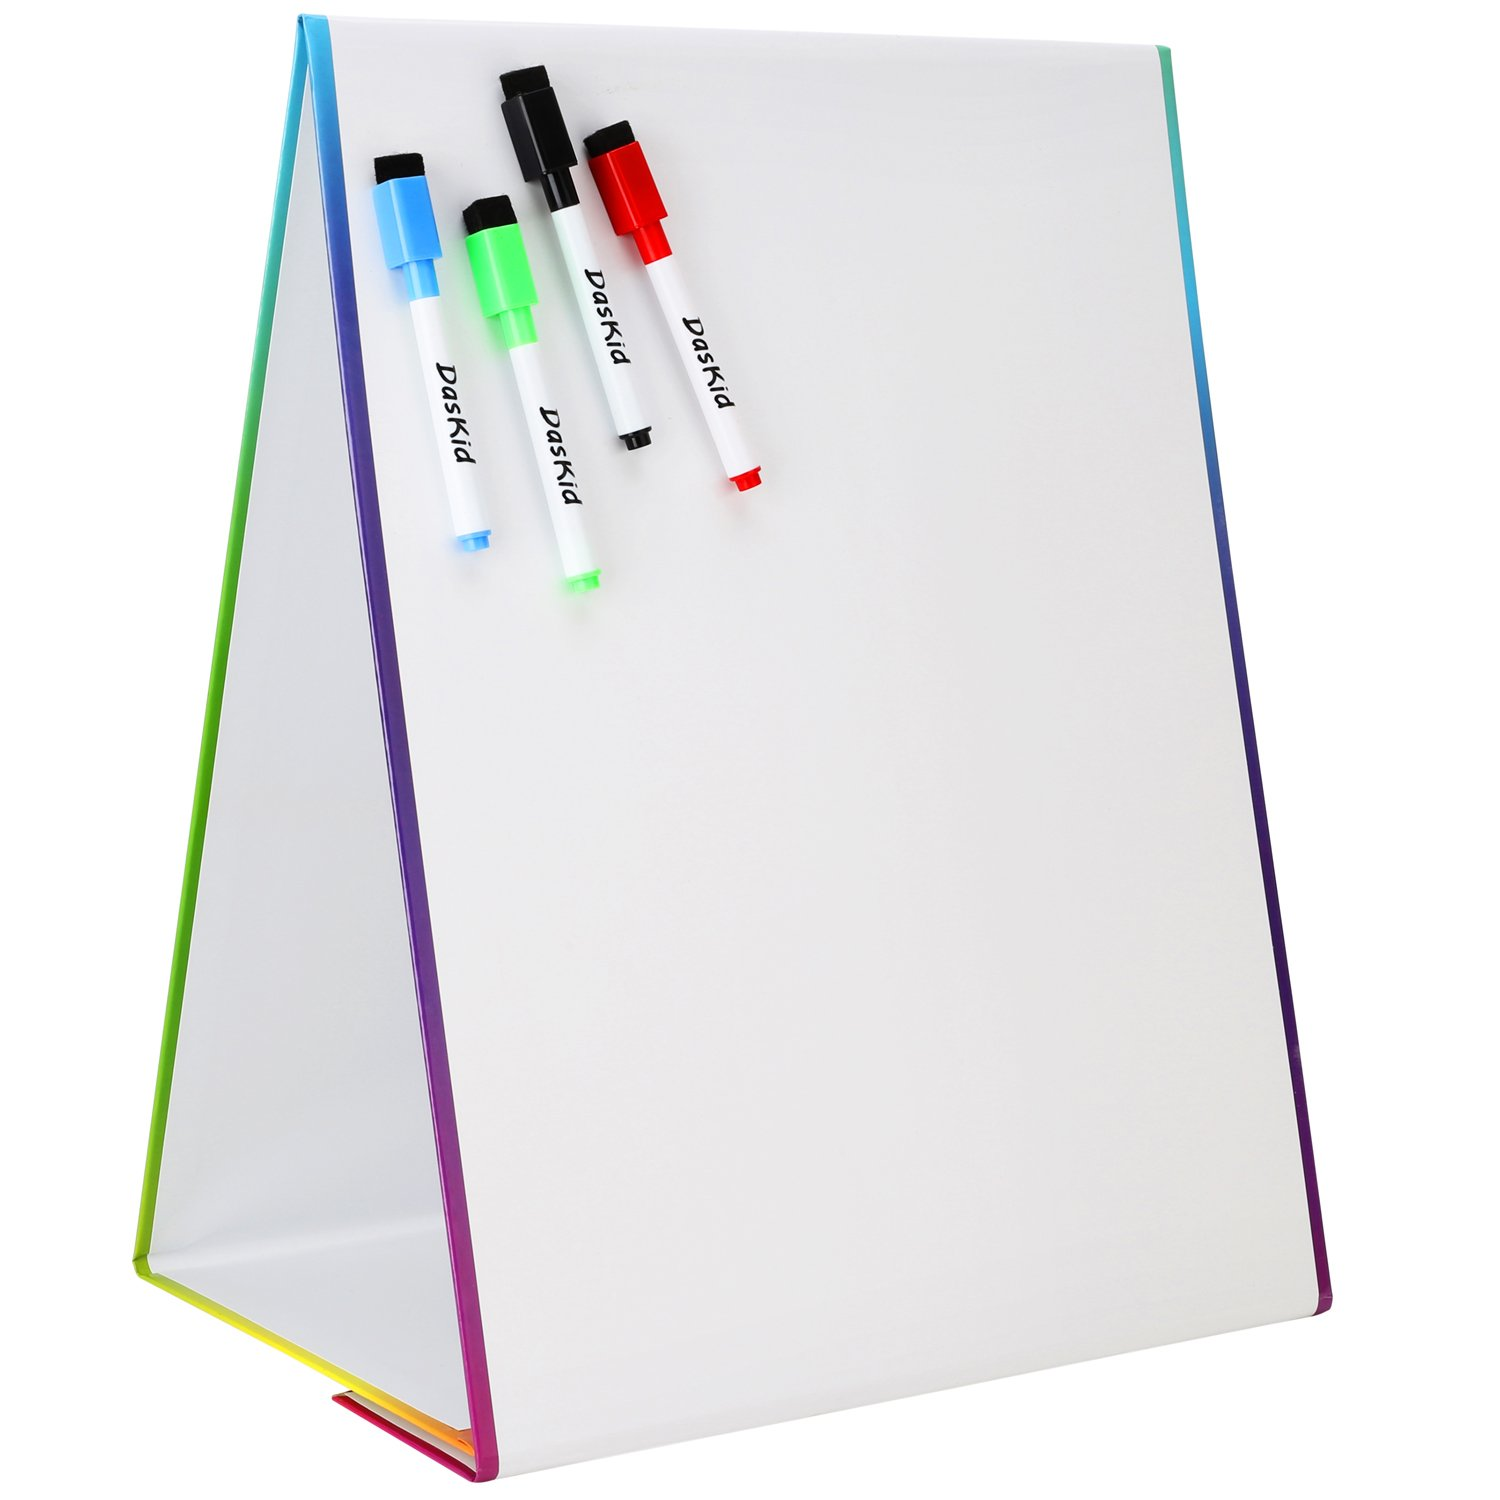 Top 7 Best Easel for Toddlers (2019 Reviews) 3